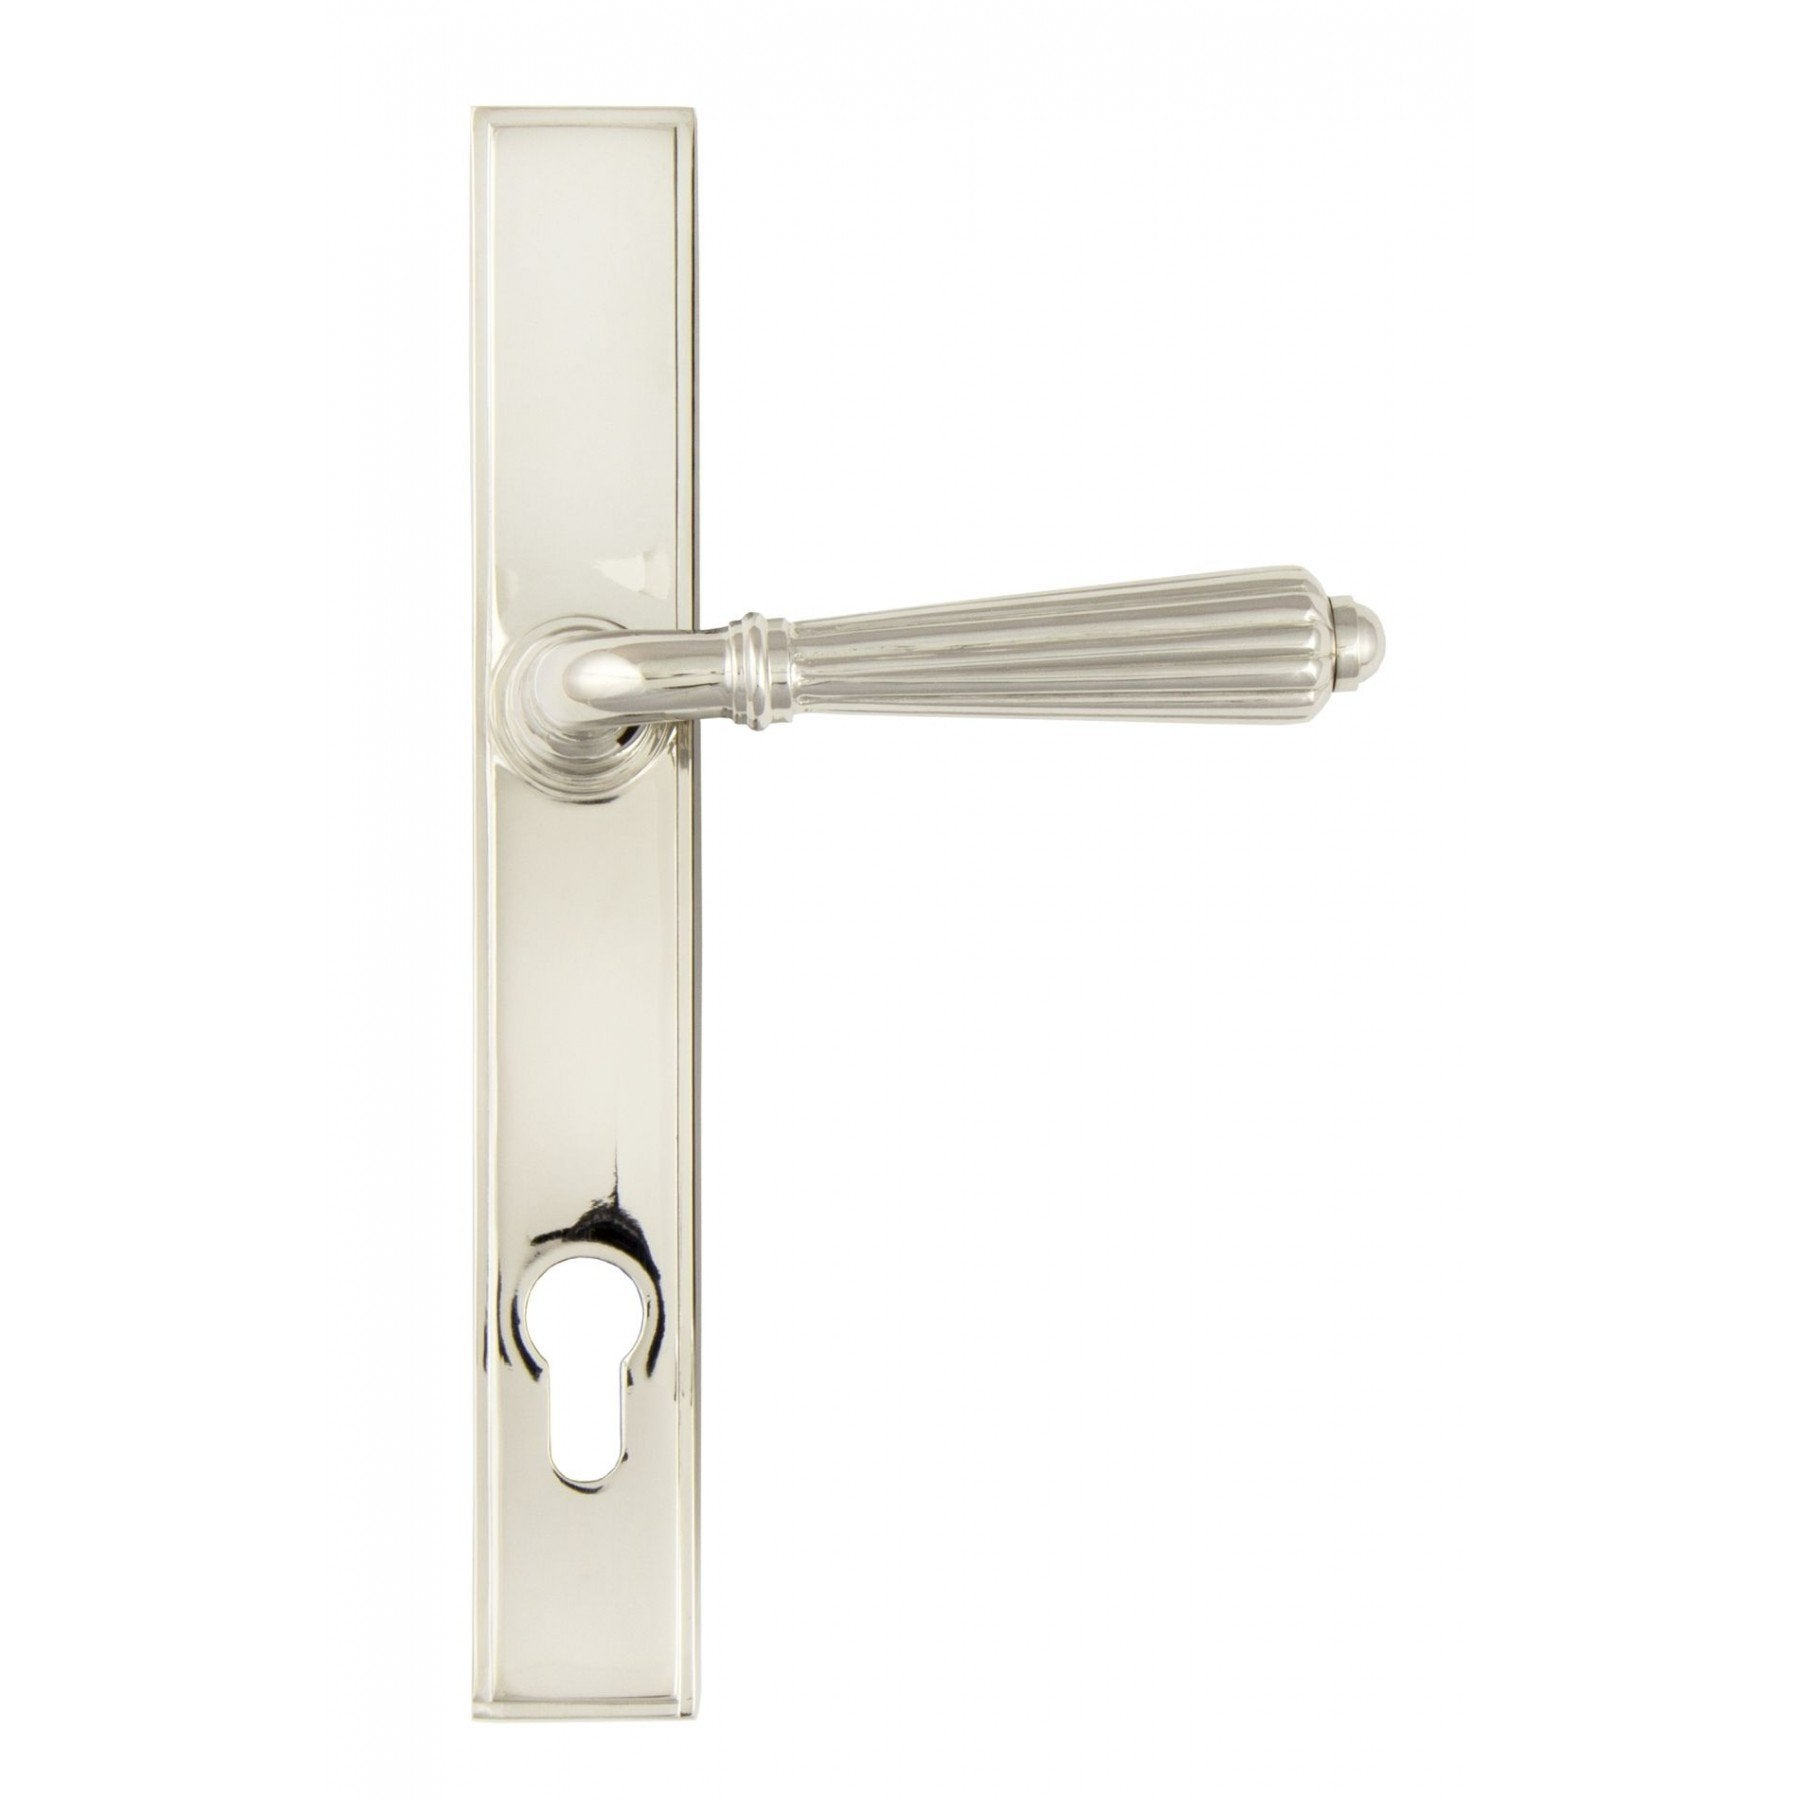 Polished Nickel Hinton Slimline Lever Espag. Lock Set - No.42 Interiors